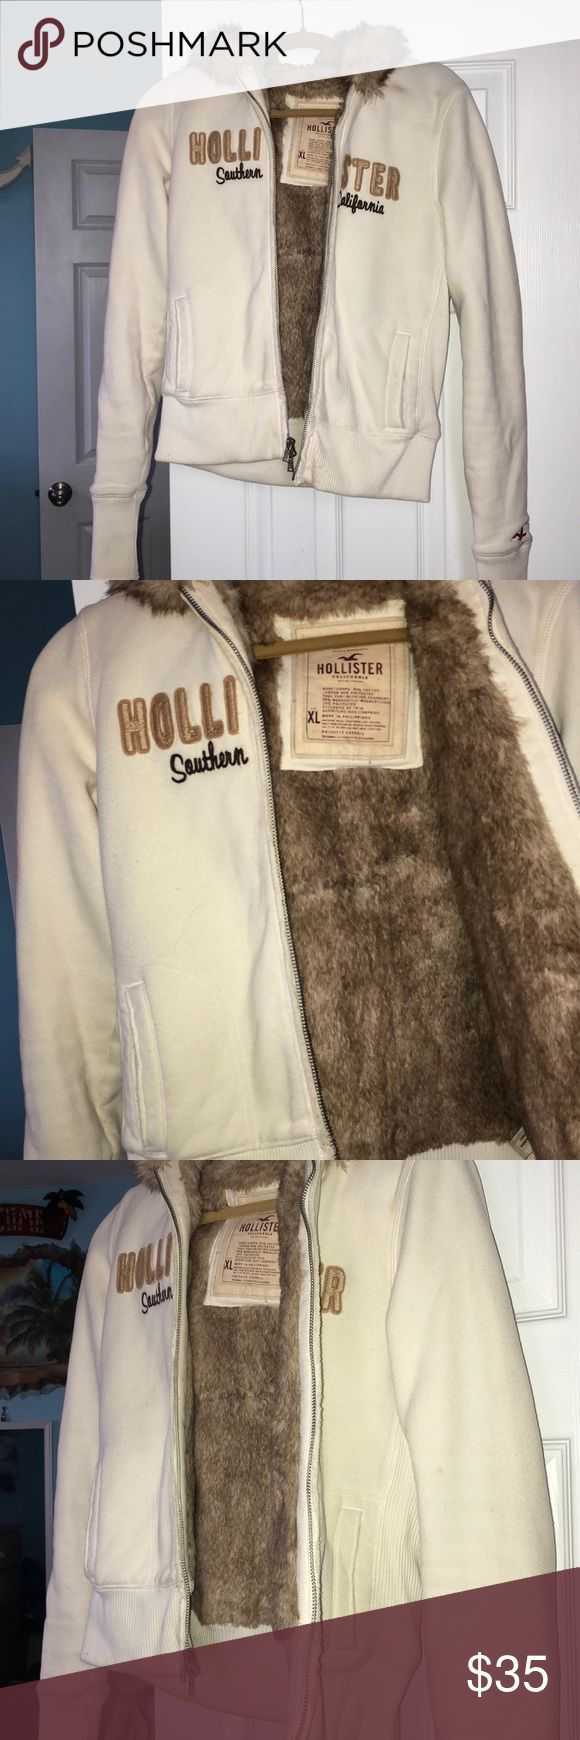 SALE🔥🔥 Hollister Jacket Very beautiful fur lined Hollister jacket. Super warm and very comfortable. Has been worn many times and is still in good condition with minor issues (shown in pics) but nothing a trip to the laundromat wouldn't spice up (I'm just too lazy to bring it especially since it doesn't fit me anymore!) definitely open to offers cause I want it gone! Hollister Jackets & Coats